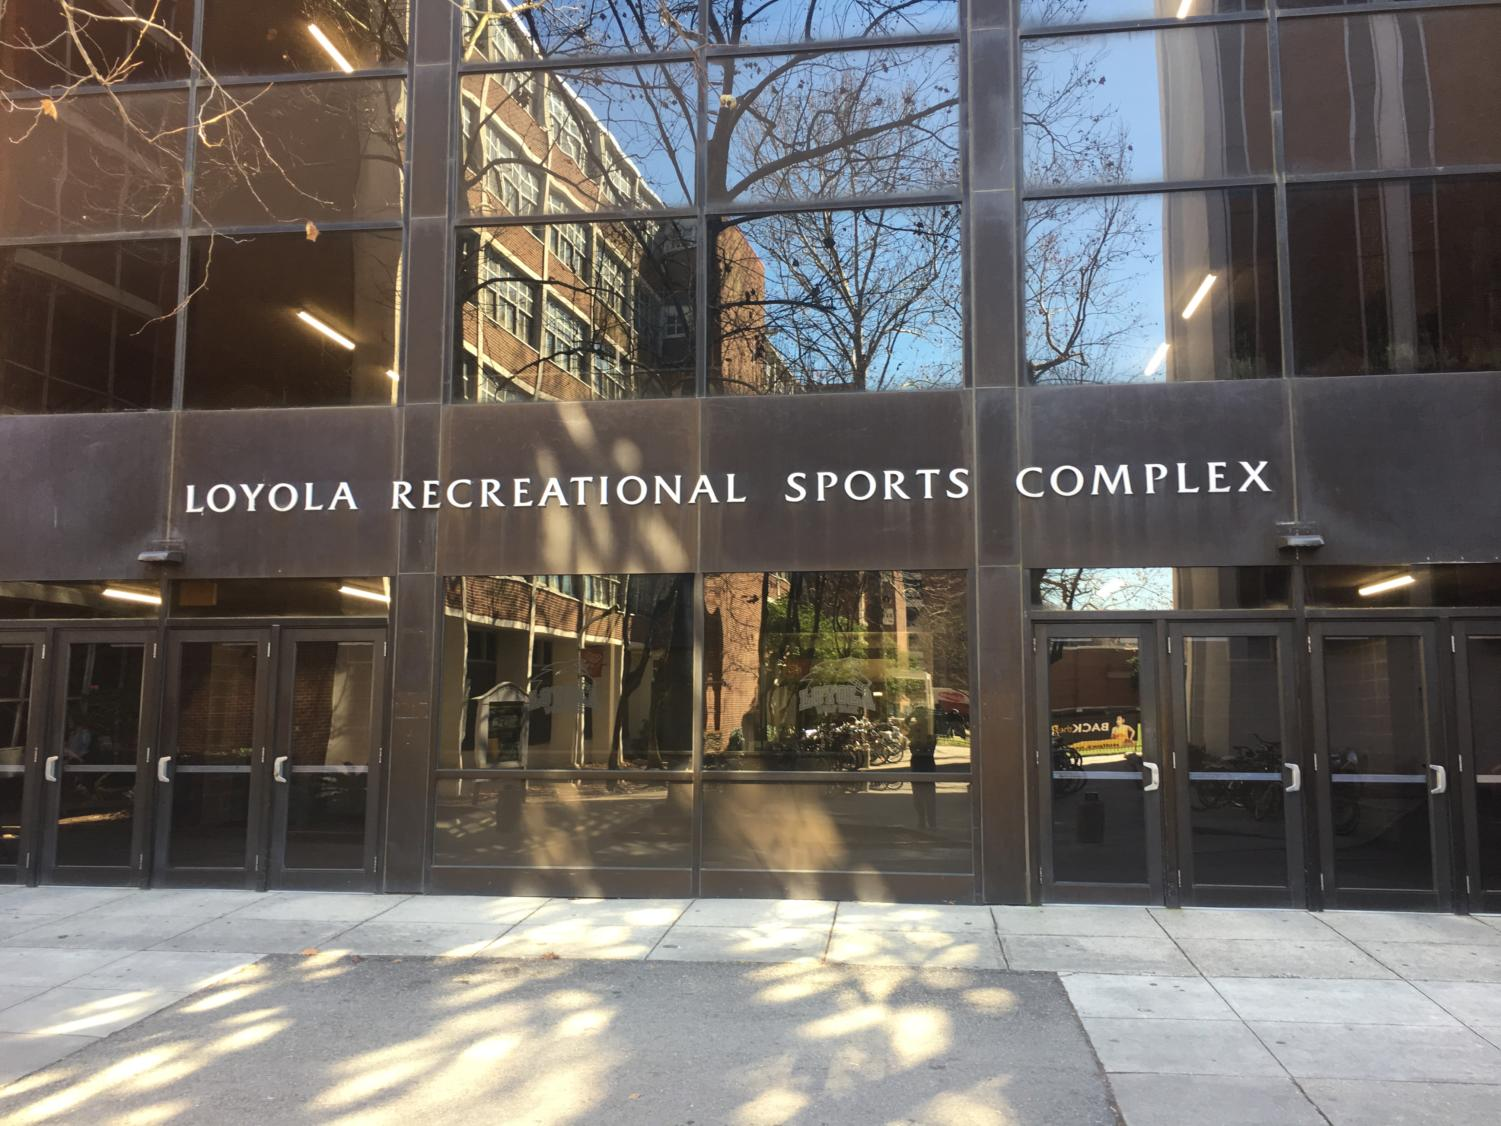 The Loyola Student Government Association will sponsor buses for students to attend three athletic events. The organization will bring students to one tennis match and two baseball games in the month of April. Photo credit: Andres Fuentes